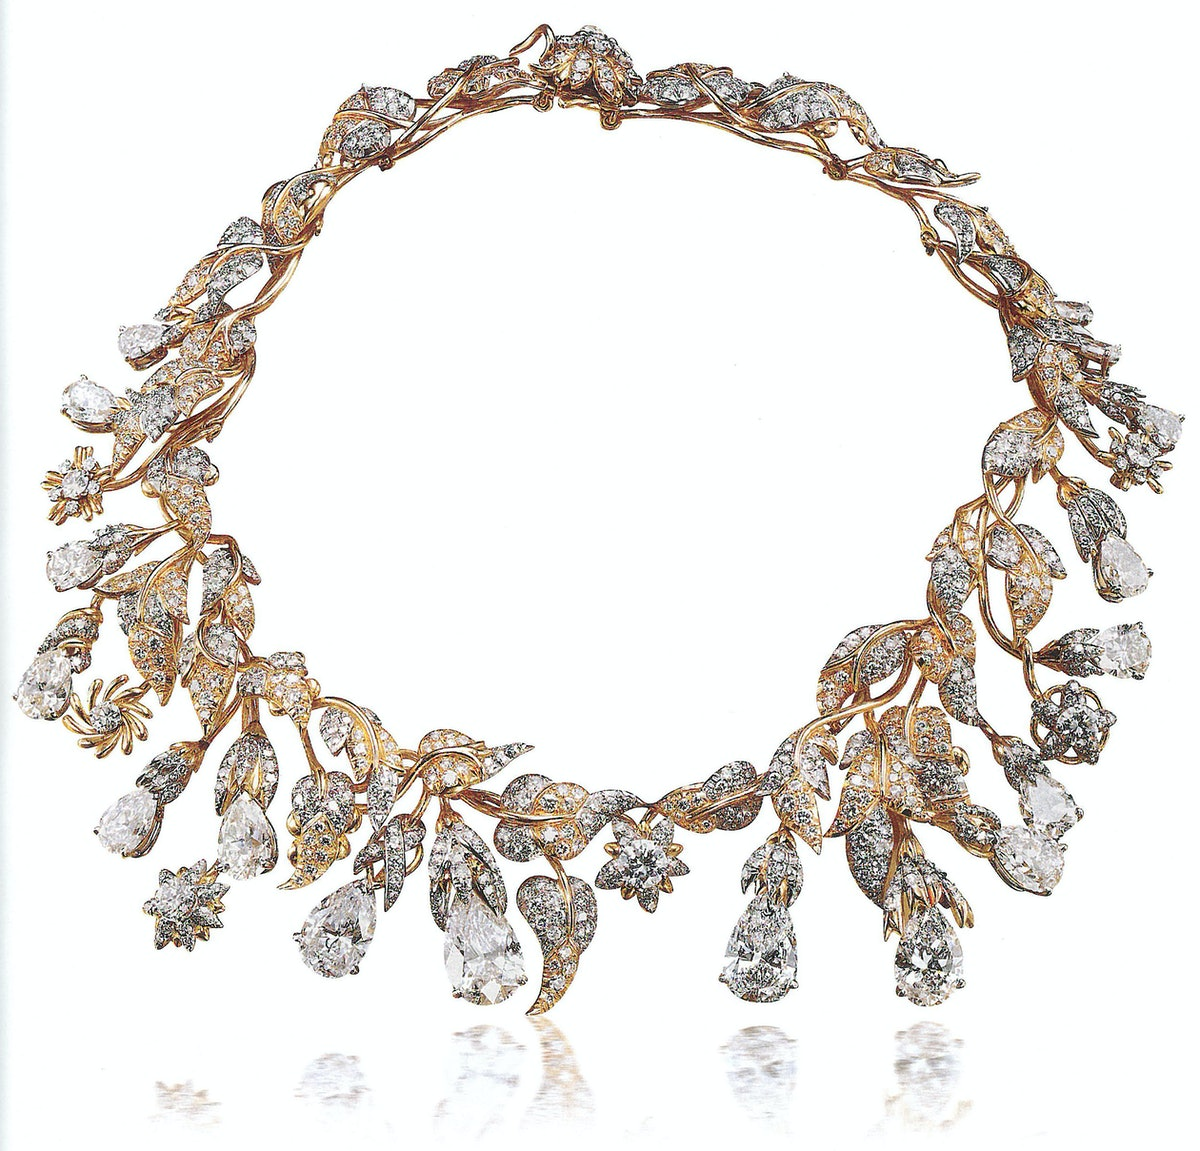 Necklace from the Estate of Betsey Cushing Whitney